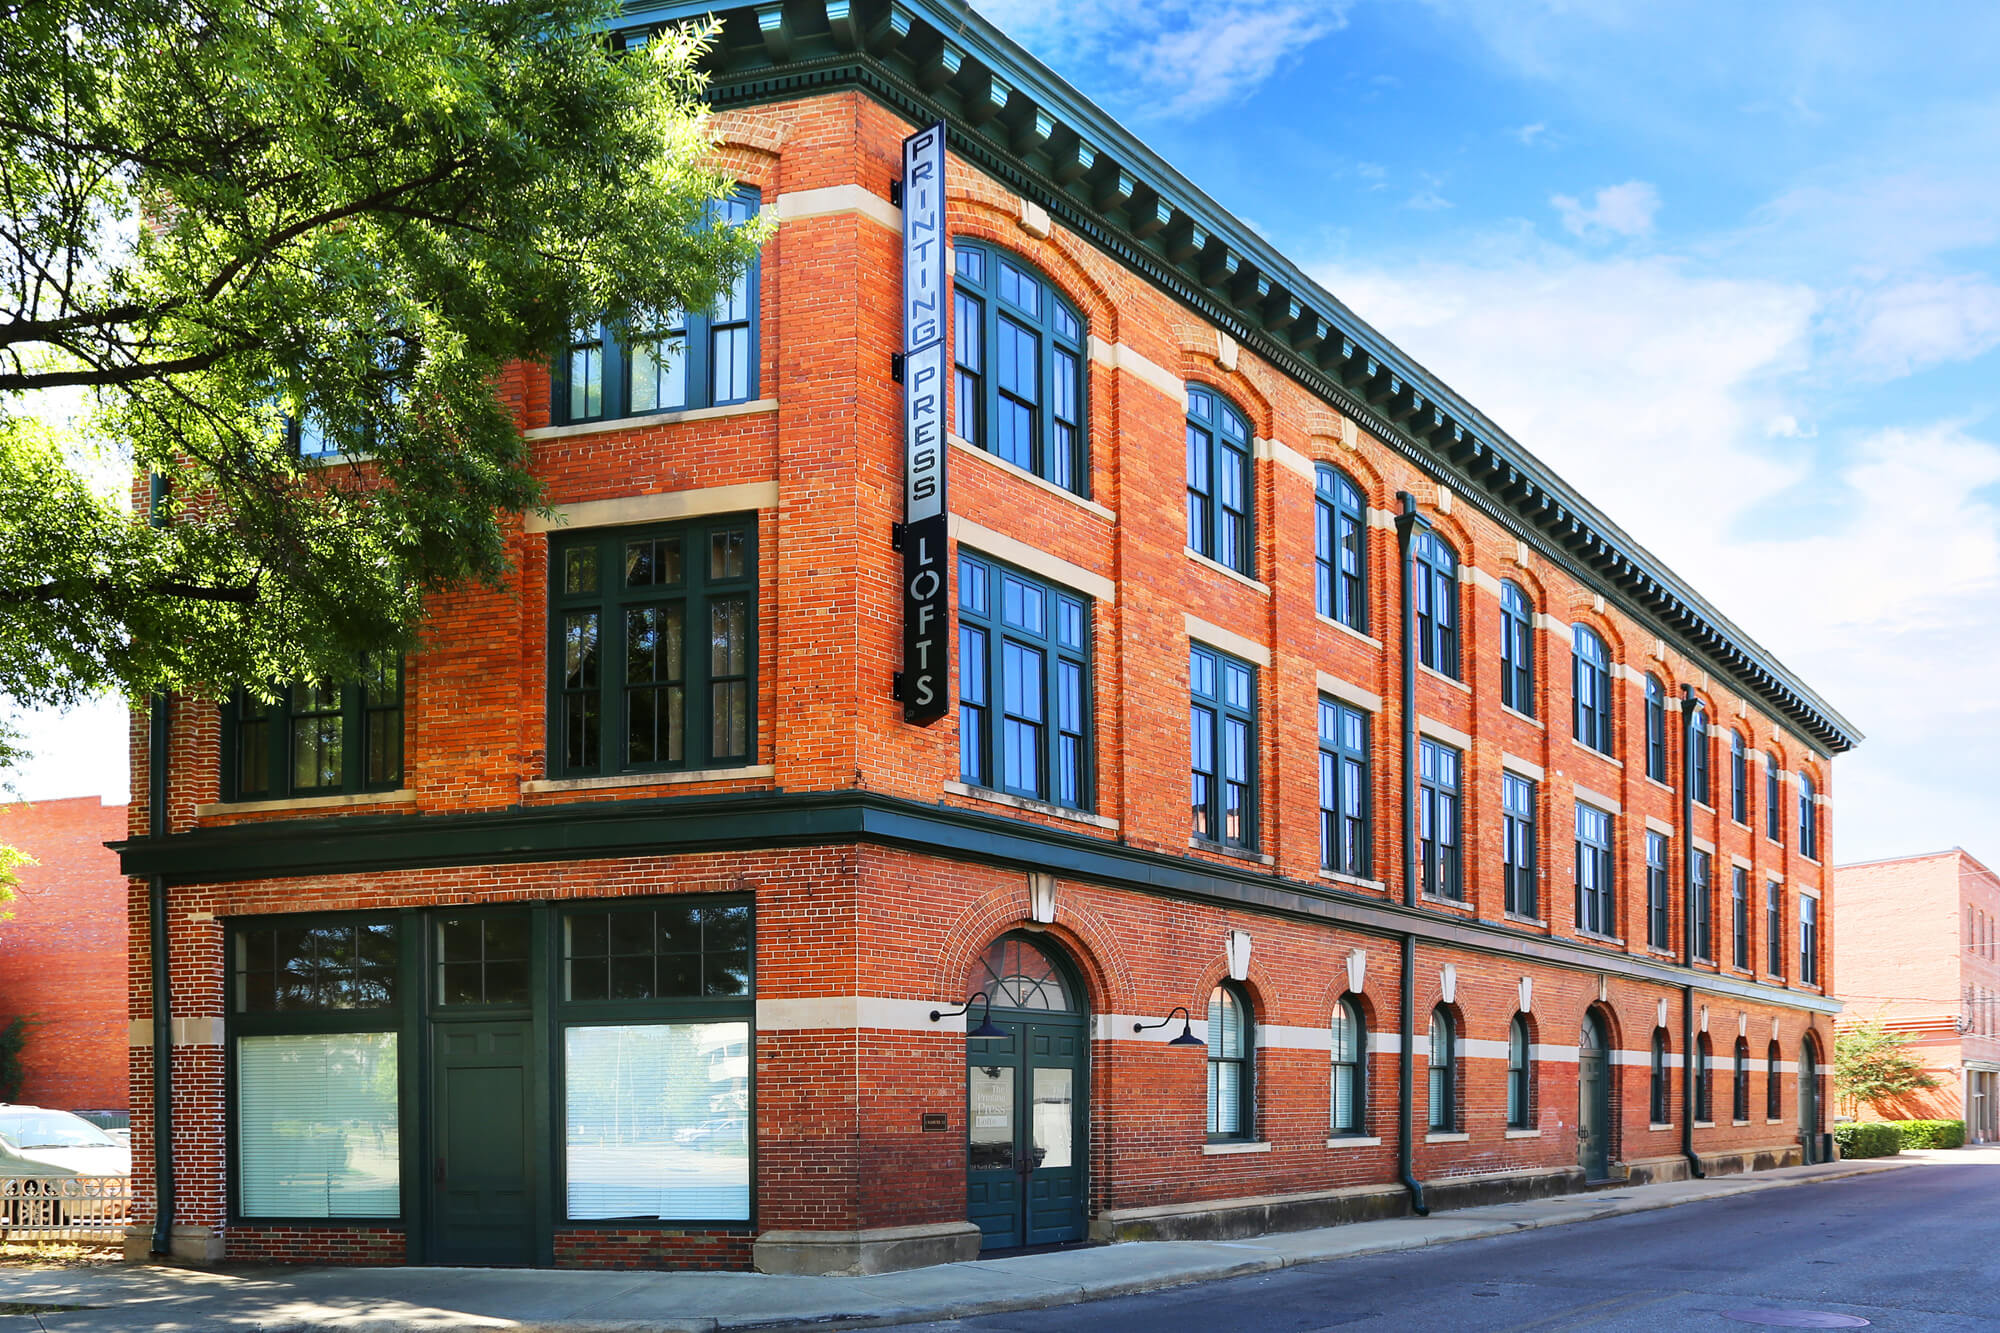 Printing Press Lofts Designed By Foshee Architecture   View Of The Exterior